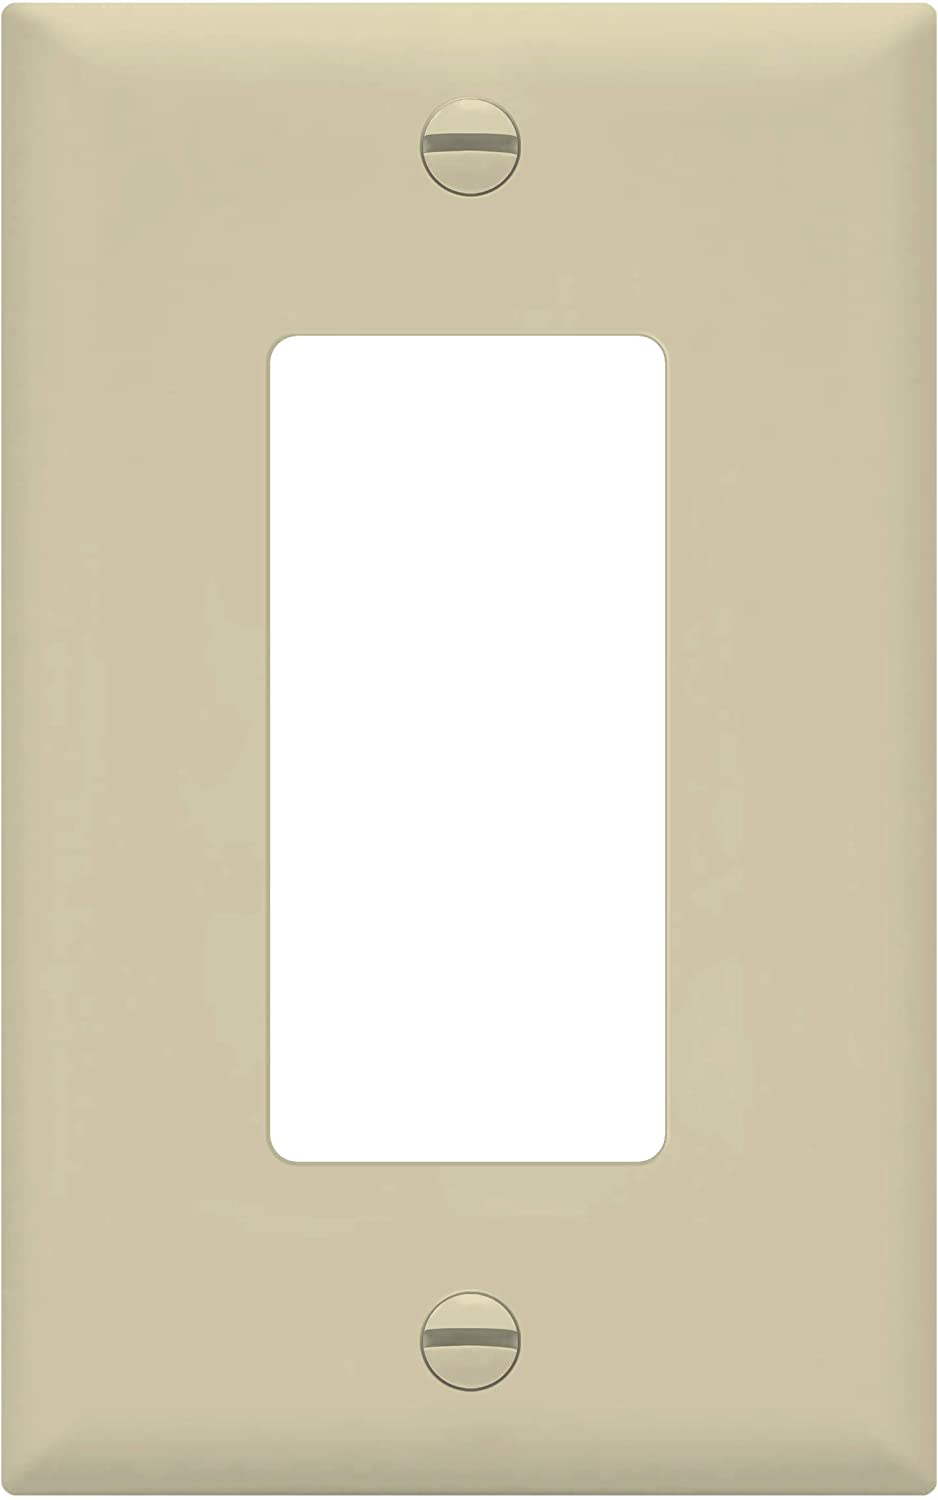 """ENERLITES Decorator Light Switch or Receptacle Outlet Wall Plate, Midway Size 1-Gang 4.88"""" x 3.11"""", Polycarbonate Thermoplastic, UL Listed, 8831M-I, Ivory"""